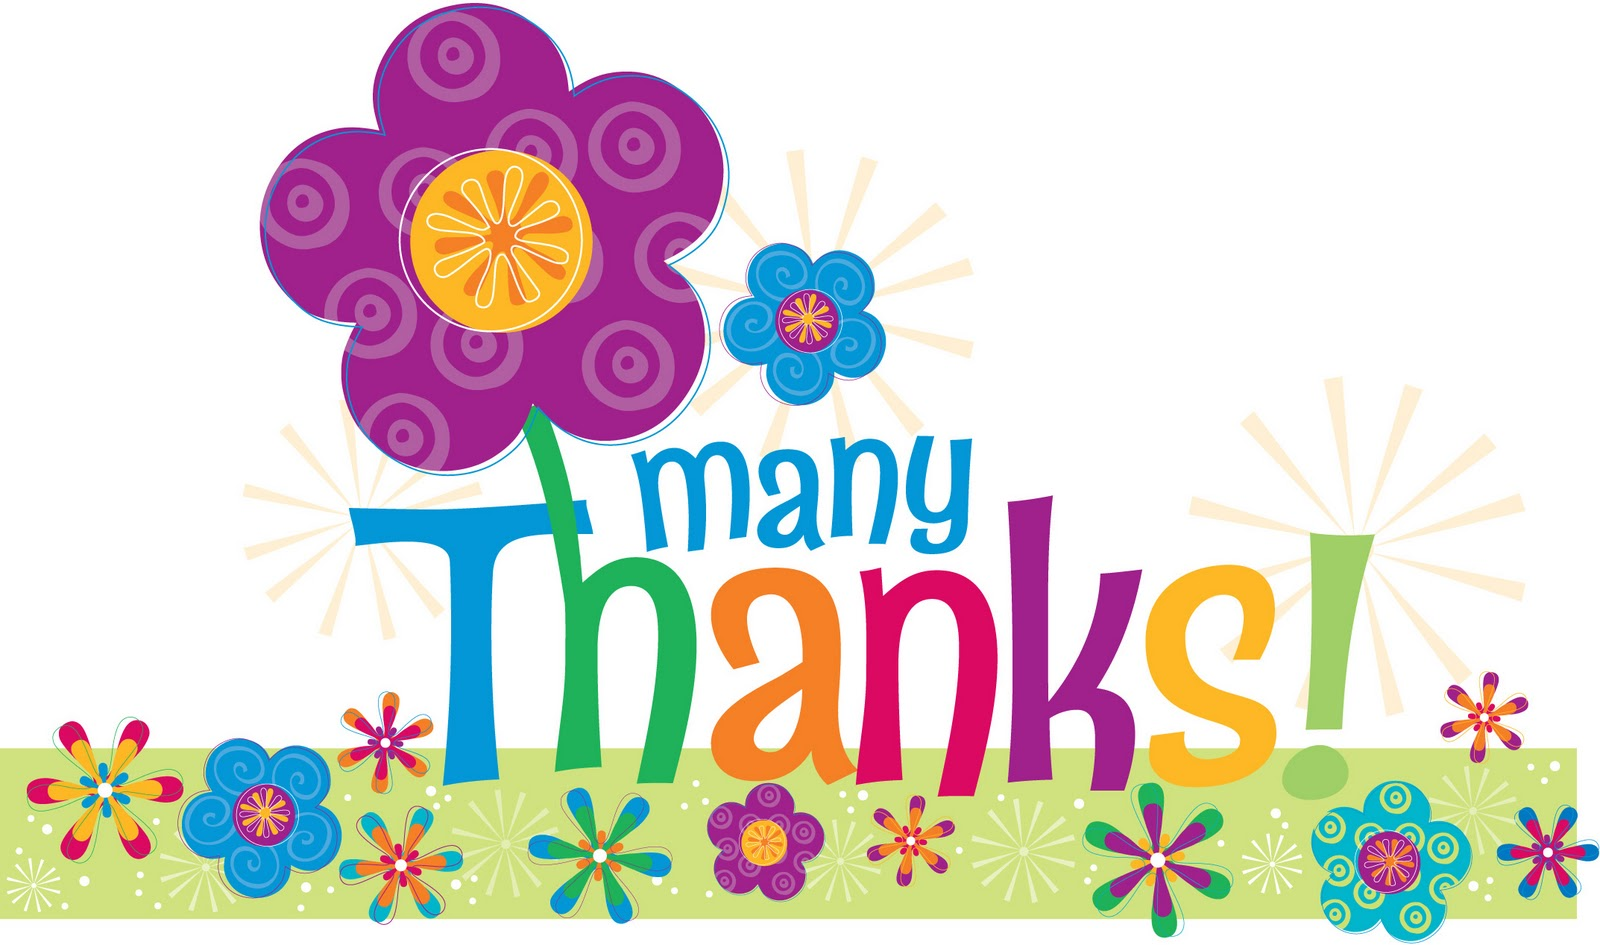 Thank you greetings dinner clipart.